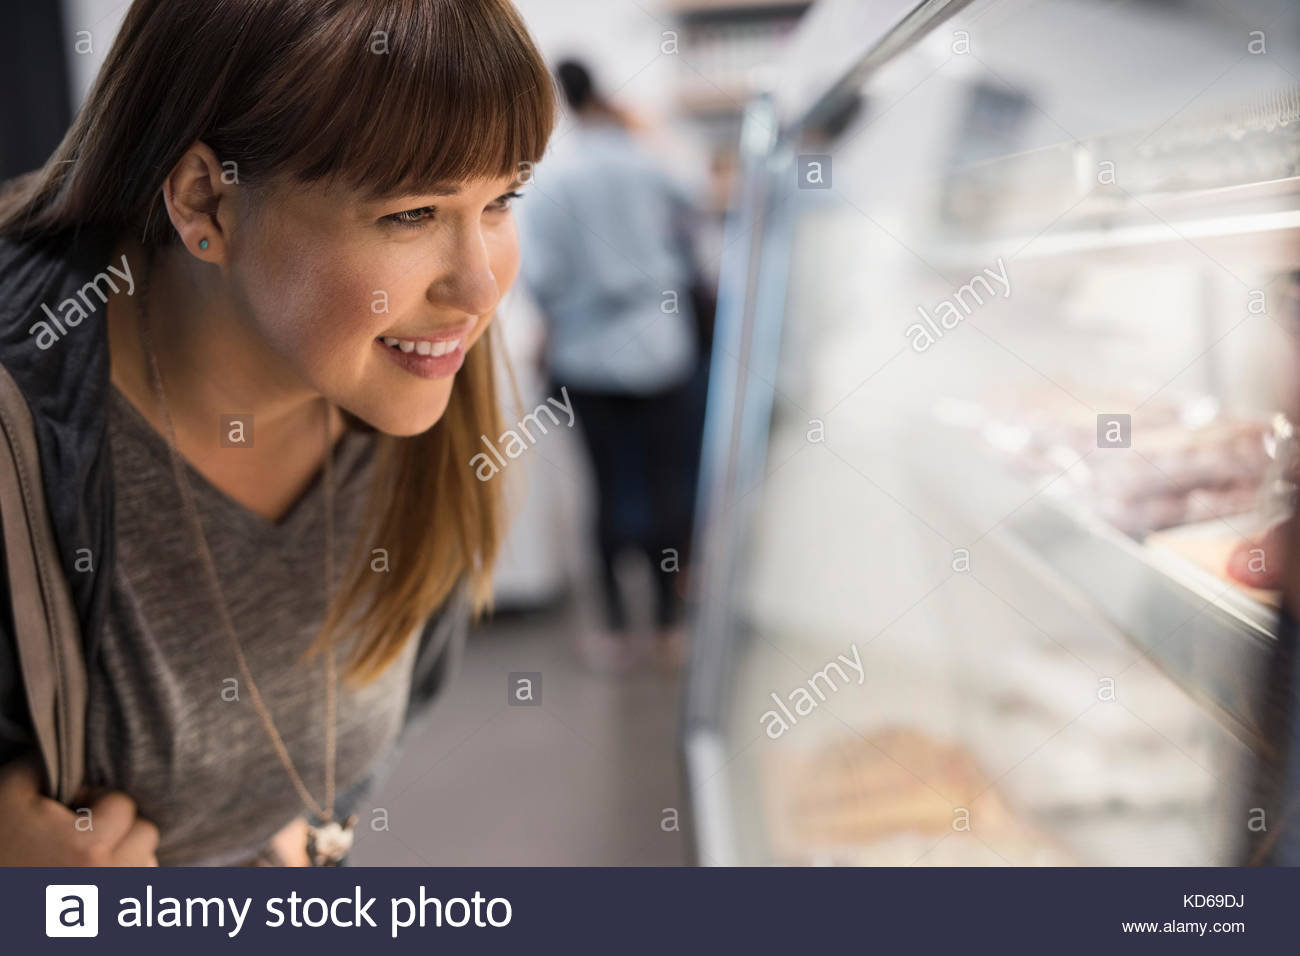 Smiling female customer browsing en cas d'affichage de la viande en boucherie Photo Stock